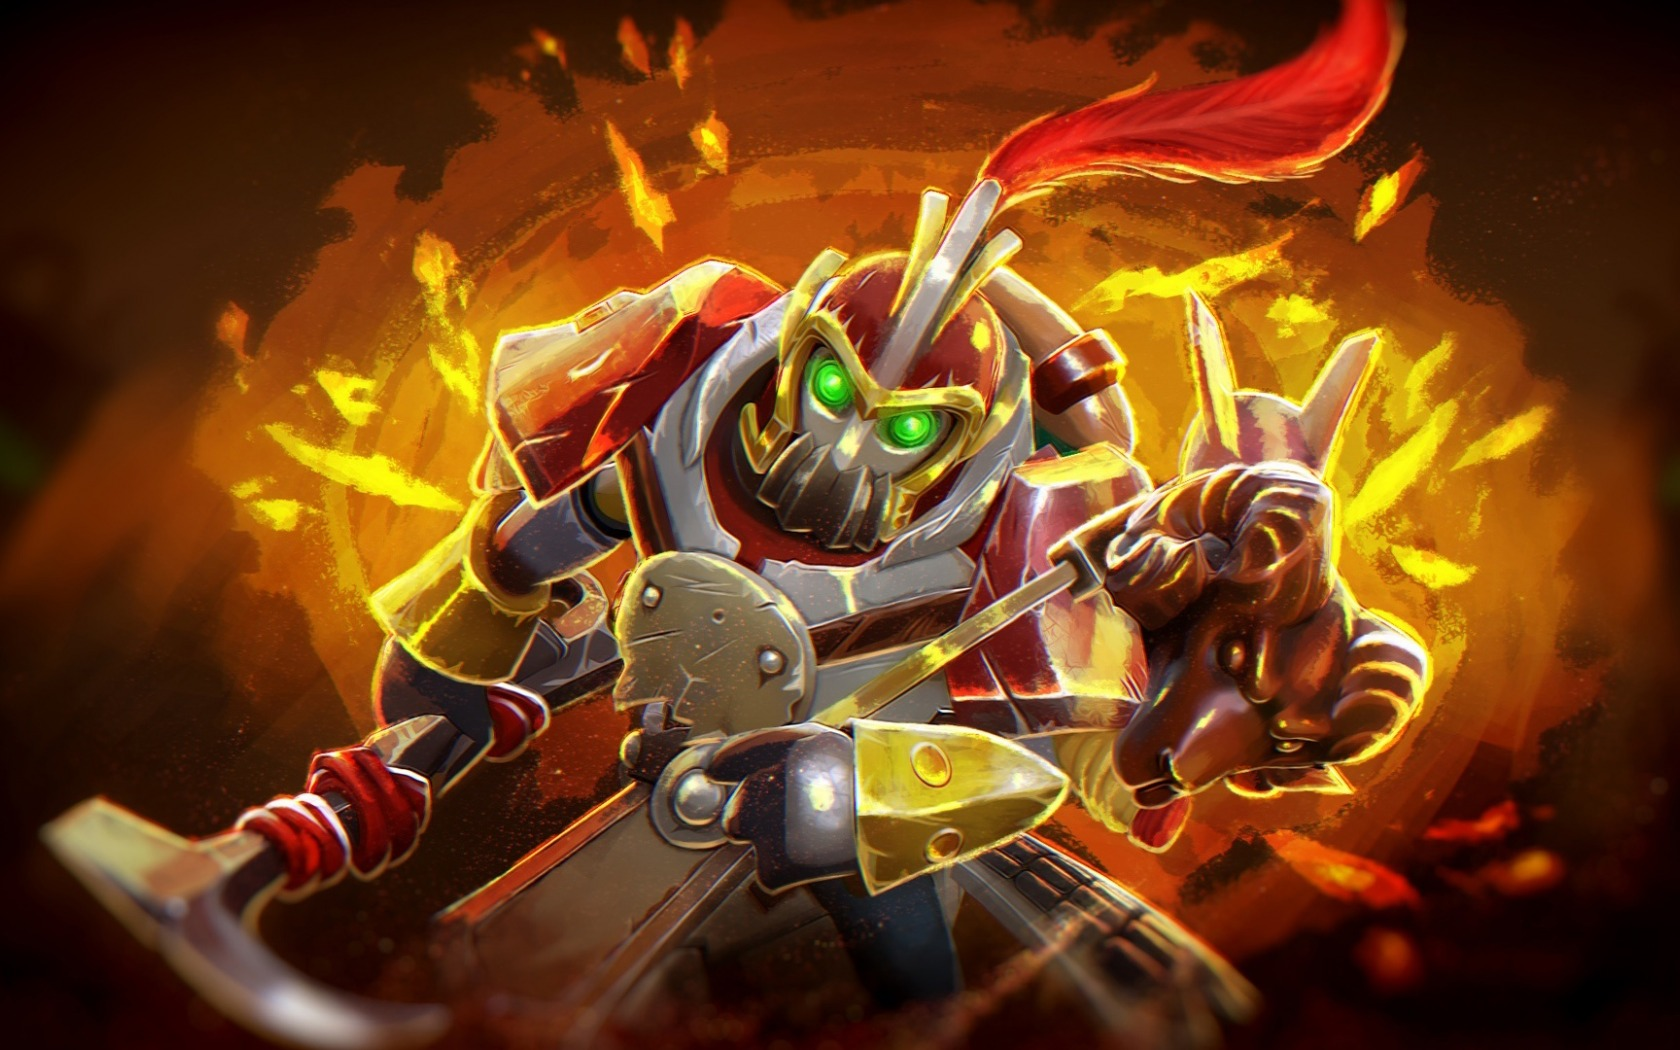 Gyrocopter hd wallpapers for computer desktop Dota 2